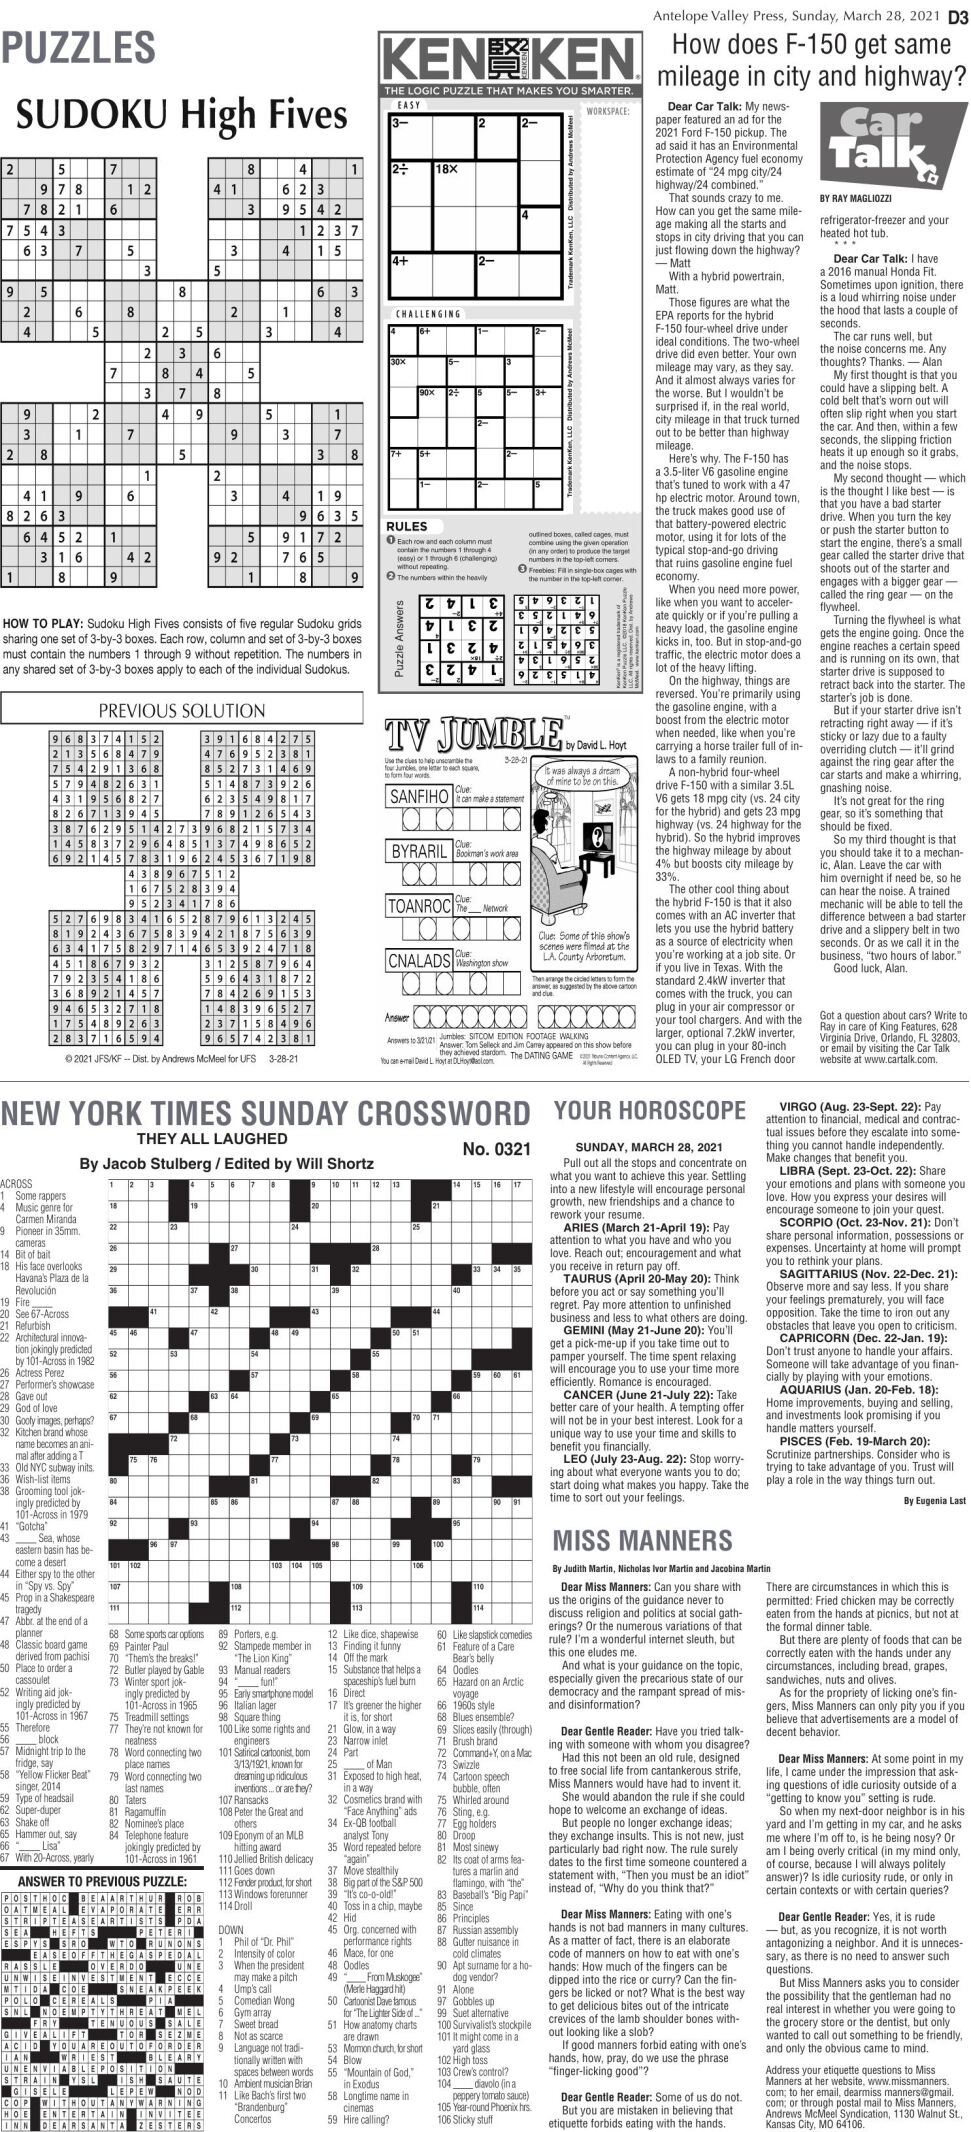 Puzzles, March 28, 2021